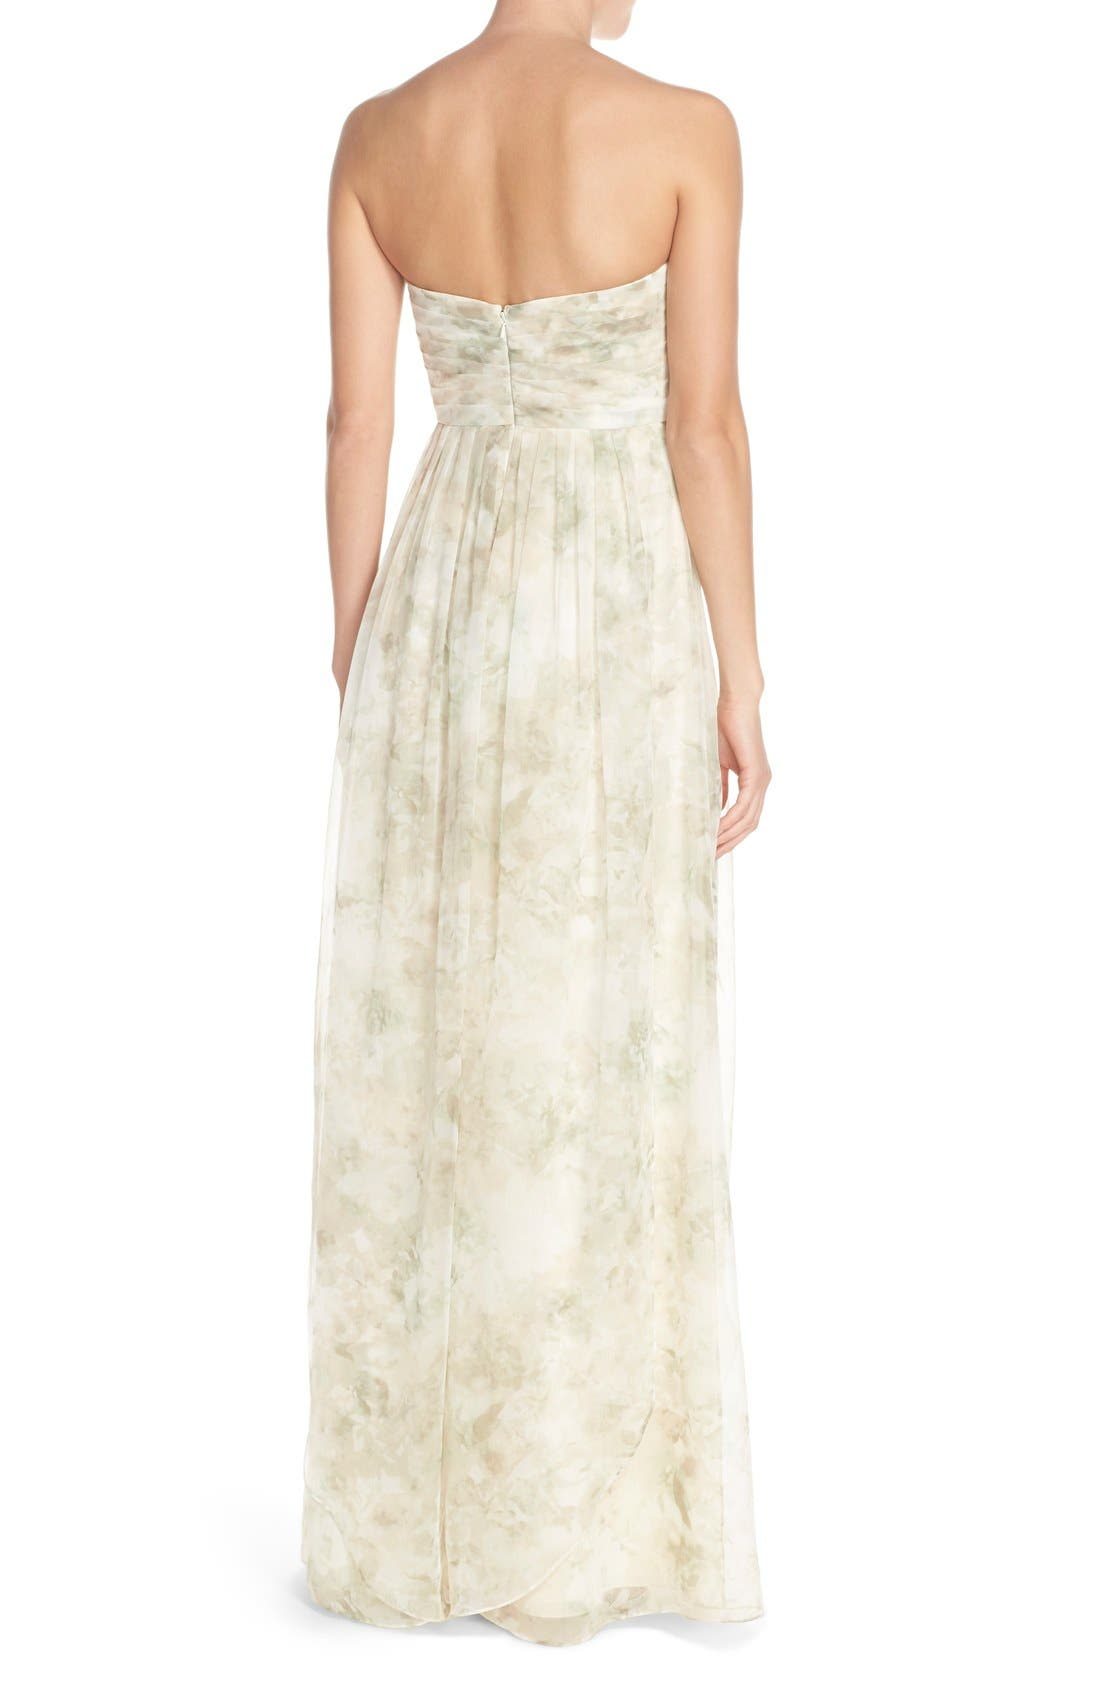 Nyla Floral Print Convertible Strapless Chiffon Gown,                             Alternate thumbnail 6, color,